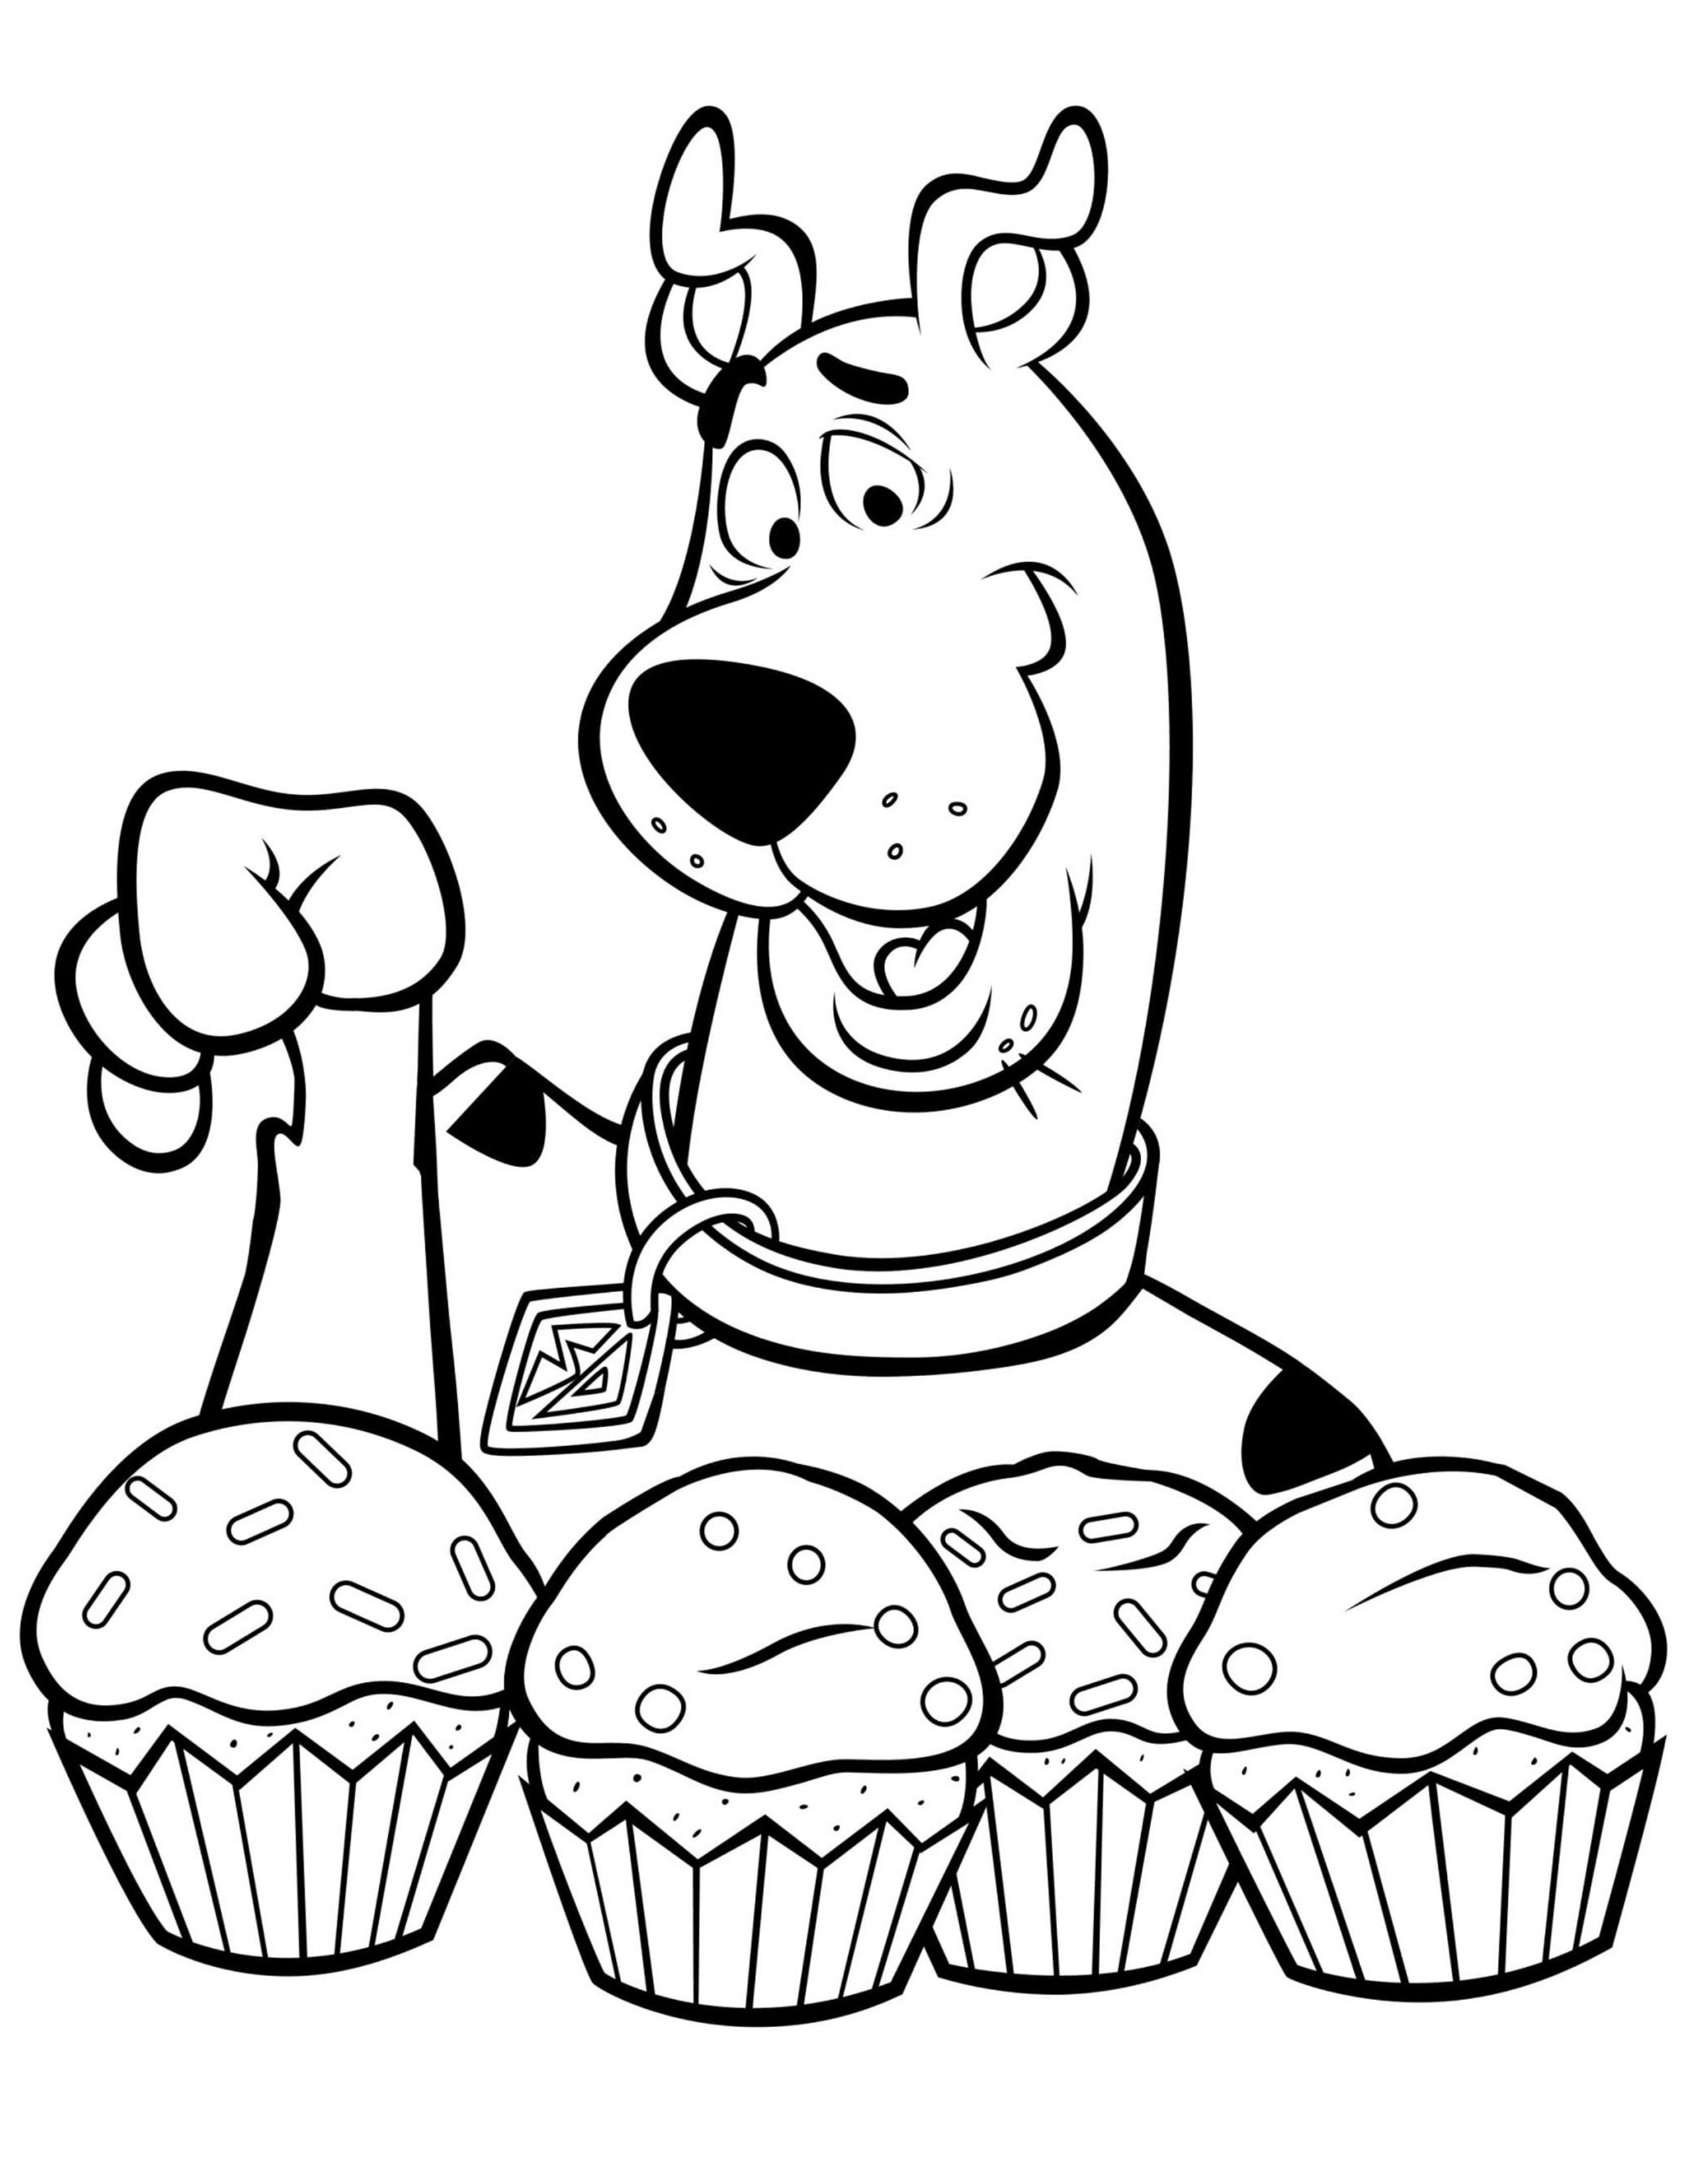 50 Scooby Doo Coloring Pages For Kids Scooby Doo Coloring Pages Cartoon Coloring Pages Coloring Pages